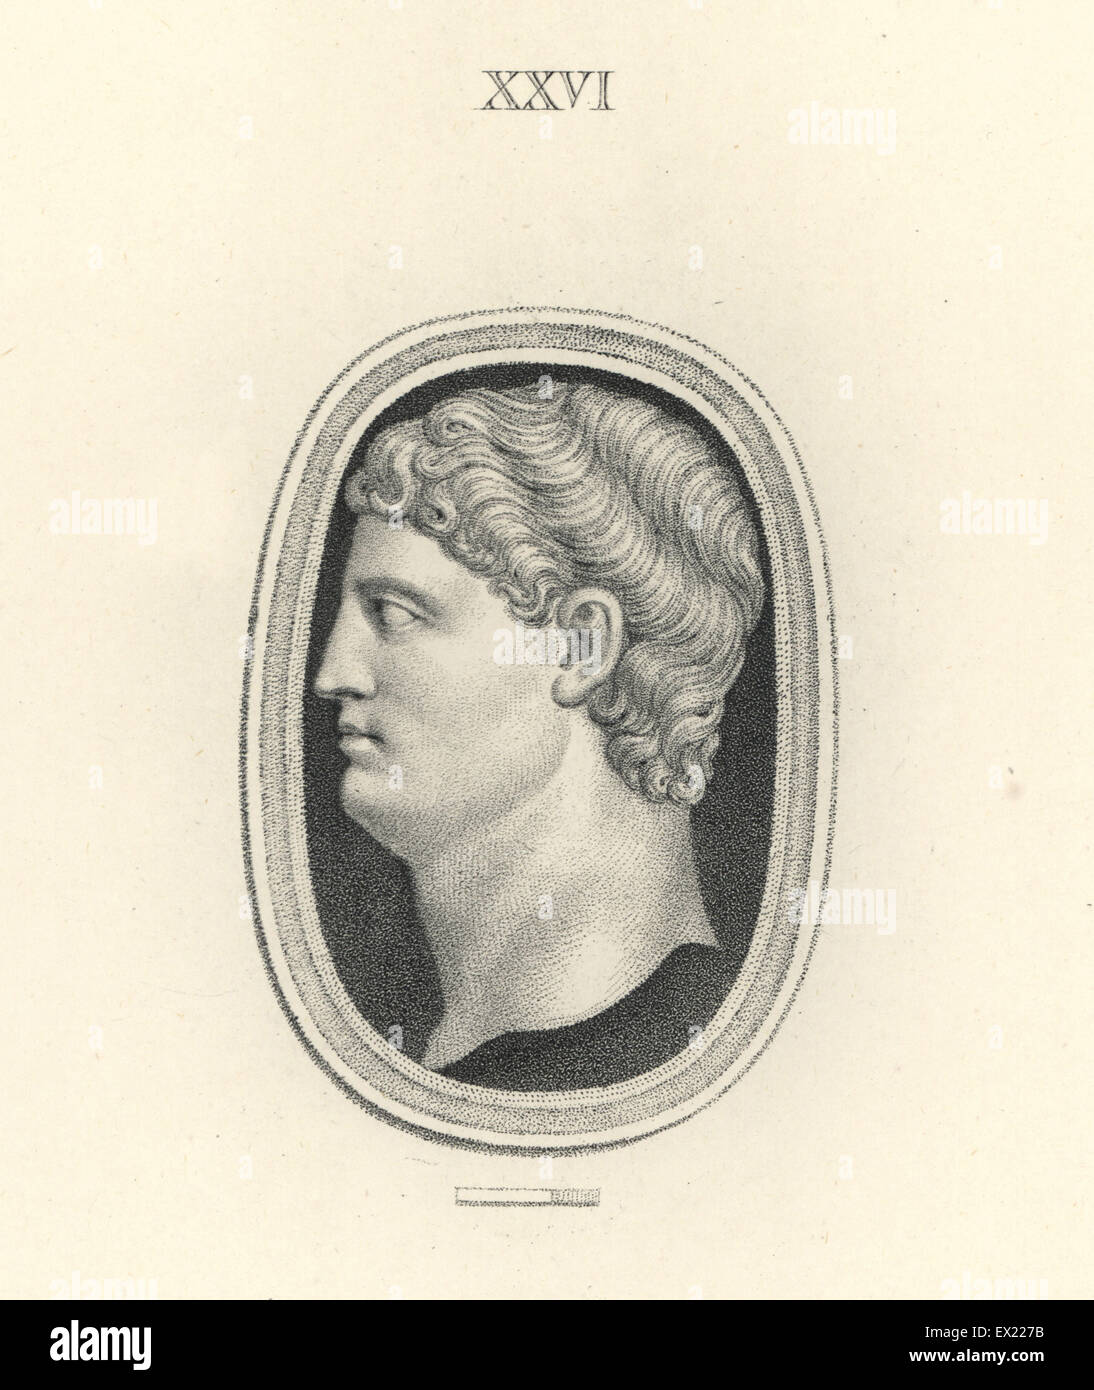 Drusus, son of Roman general Germanicus. Copperplate engraving by Francesco Bartolozzi from 108 Plates of Antique - Stock Image